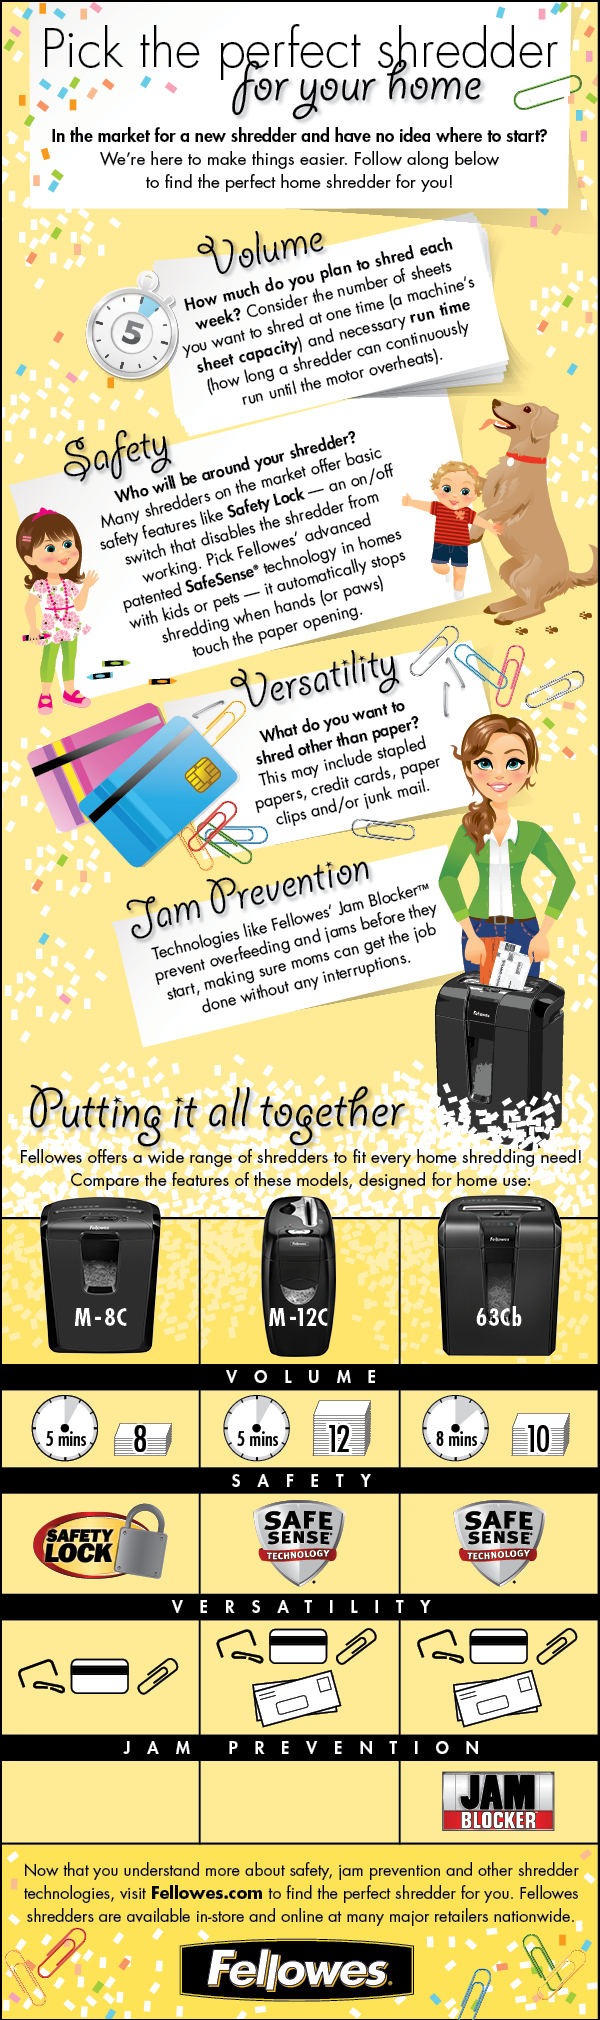 Fellowes Home Shredders Infographic